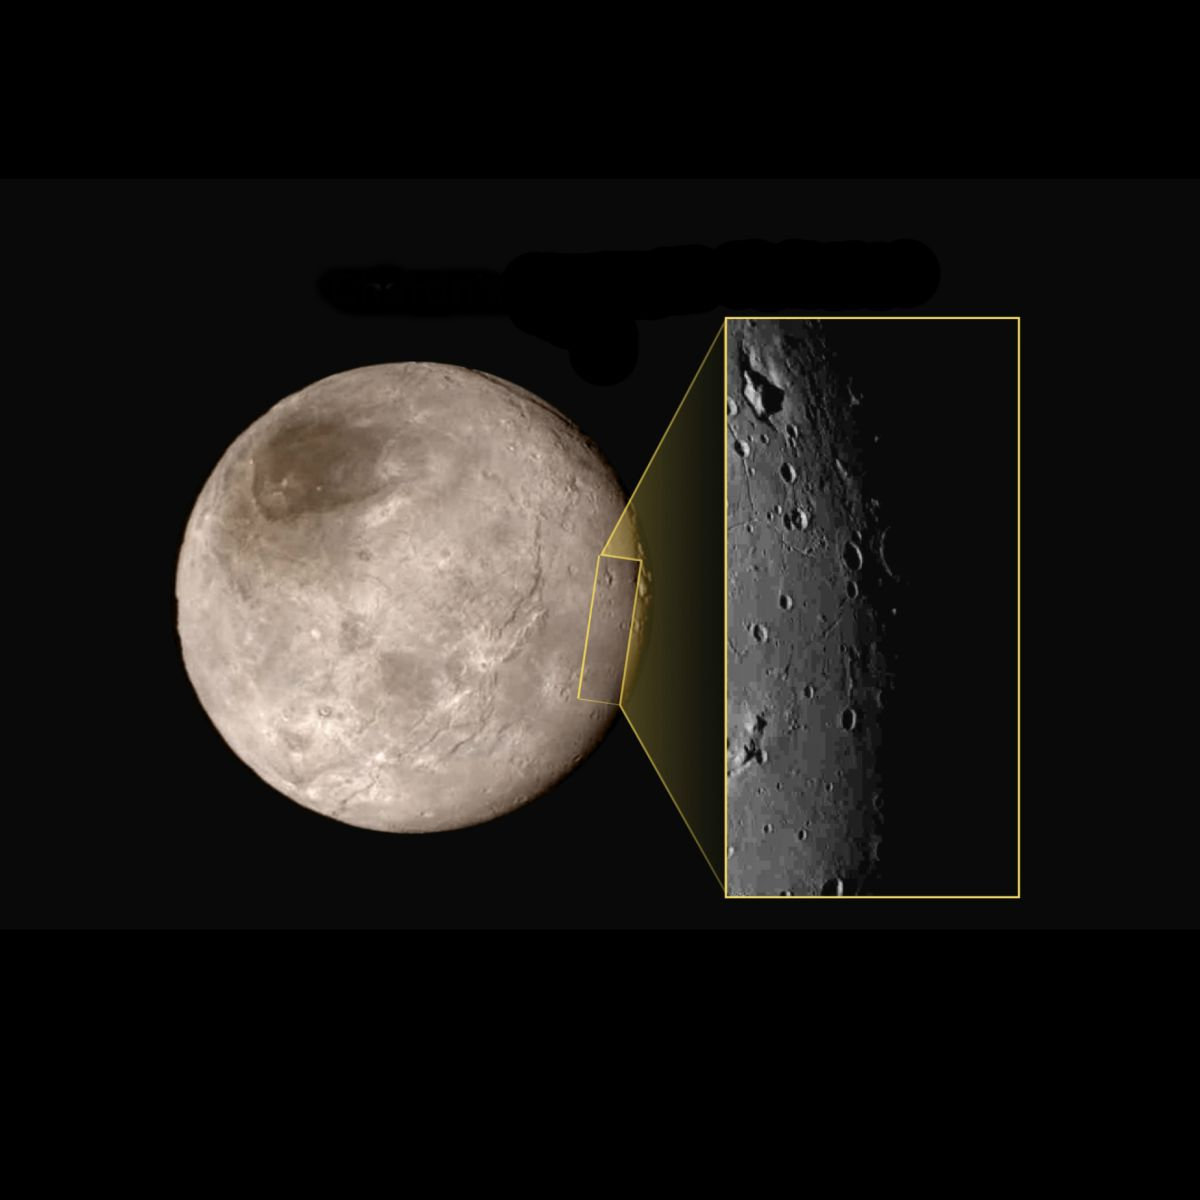 Pluto's Big Moon Charon Has a Bizarre Mountain in a Moat (Photo)